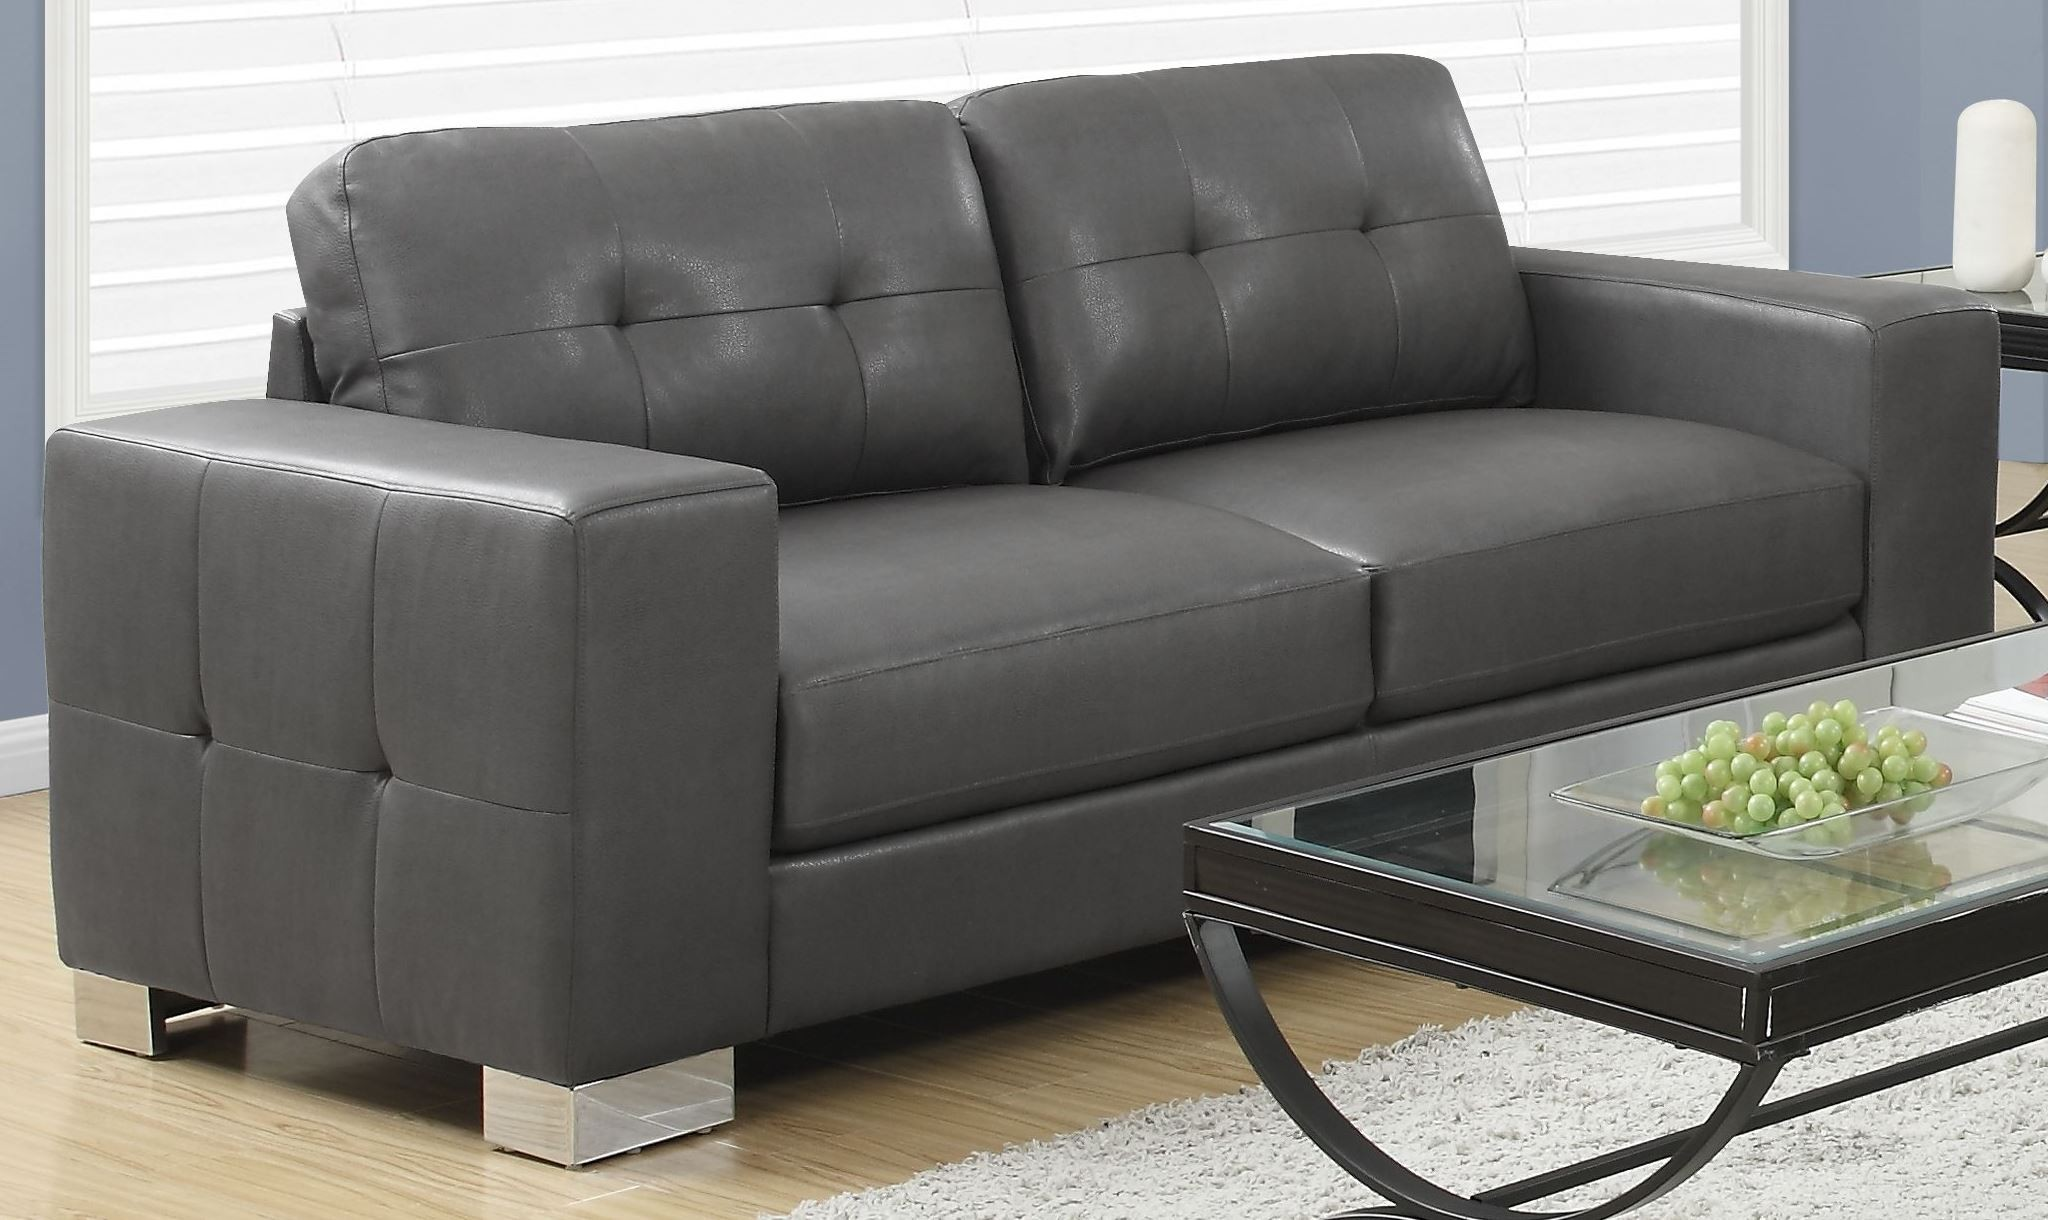 Gray Leather Sofa 8223gy Charcoal Grey Bonded Leather Sofa 8223gy Monarch